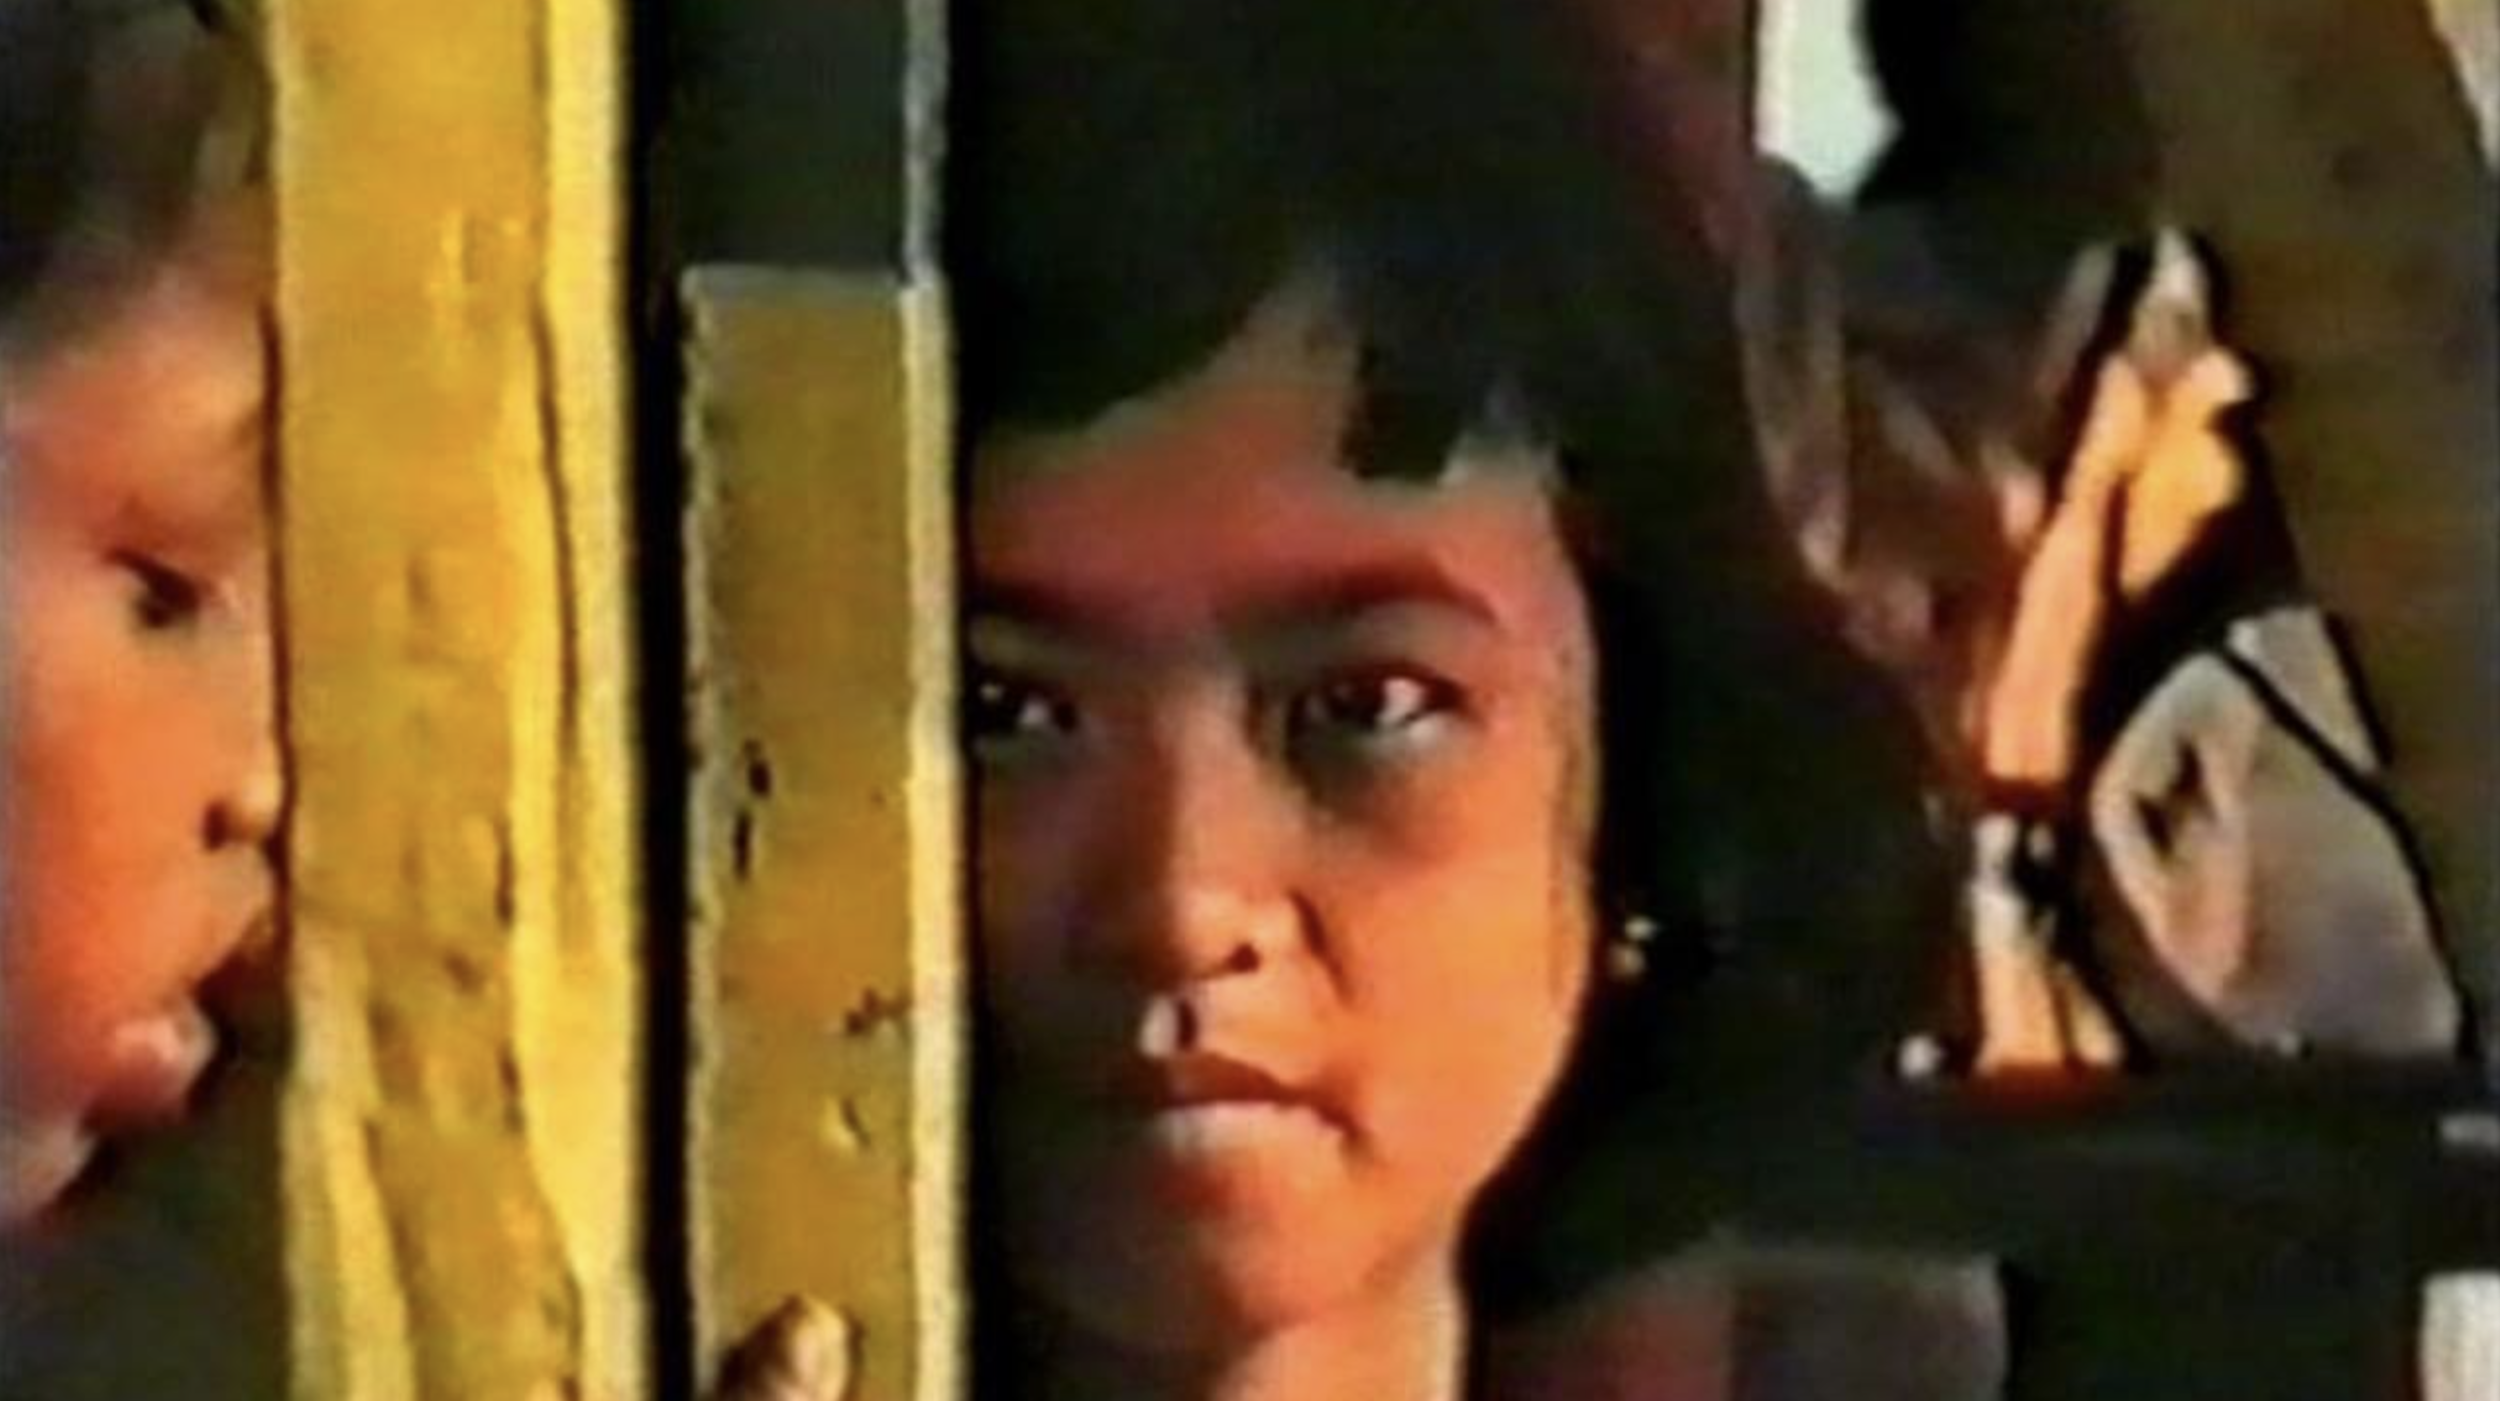 Riri Riza | Indonesia | 1991 | 14 mins  Riri Riza's short film, taken during his film school days, depicts a boy's desire to ride on a merry-go-round.